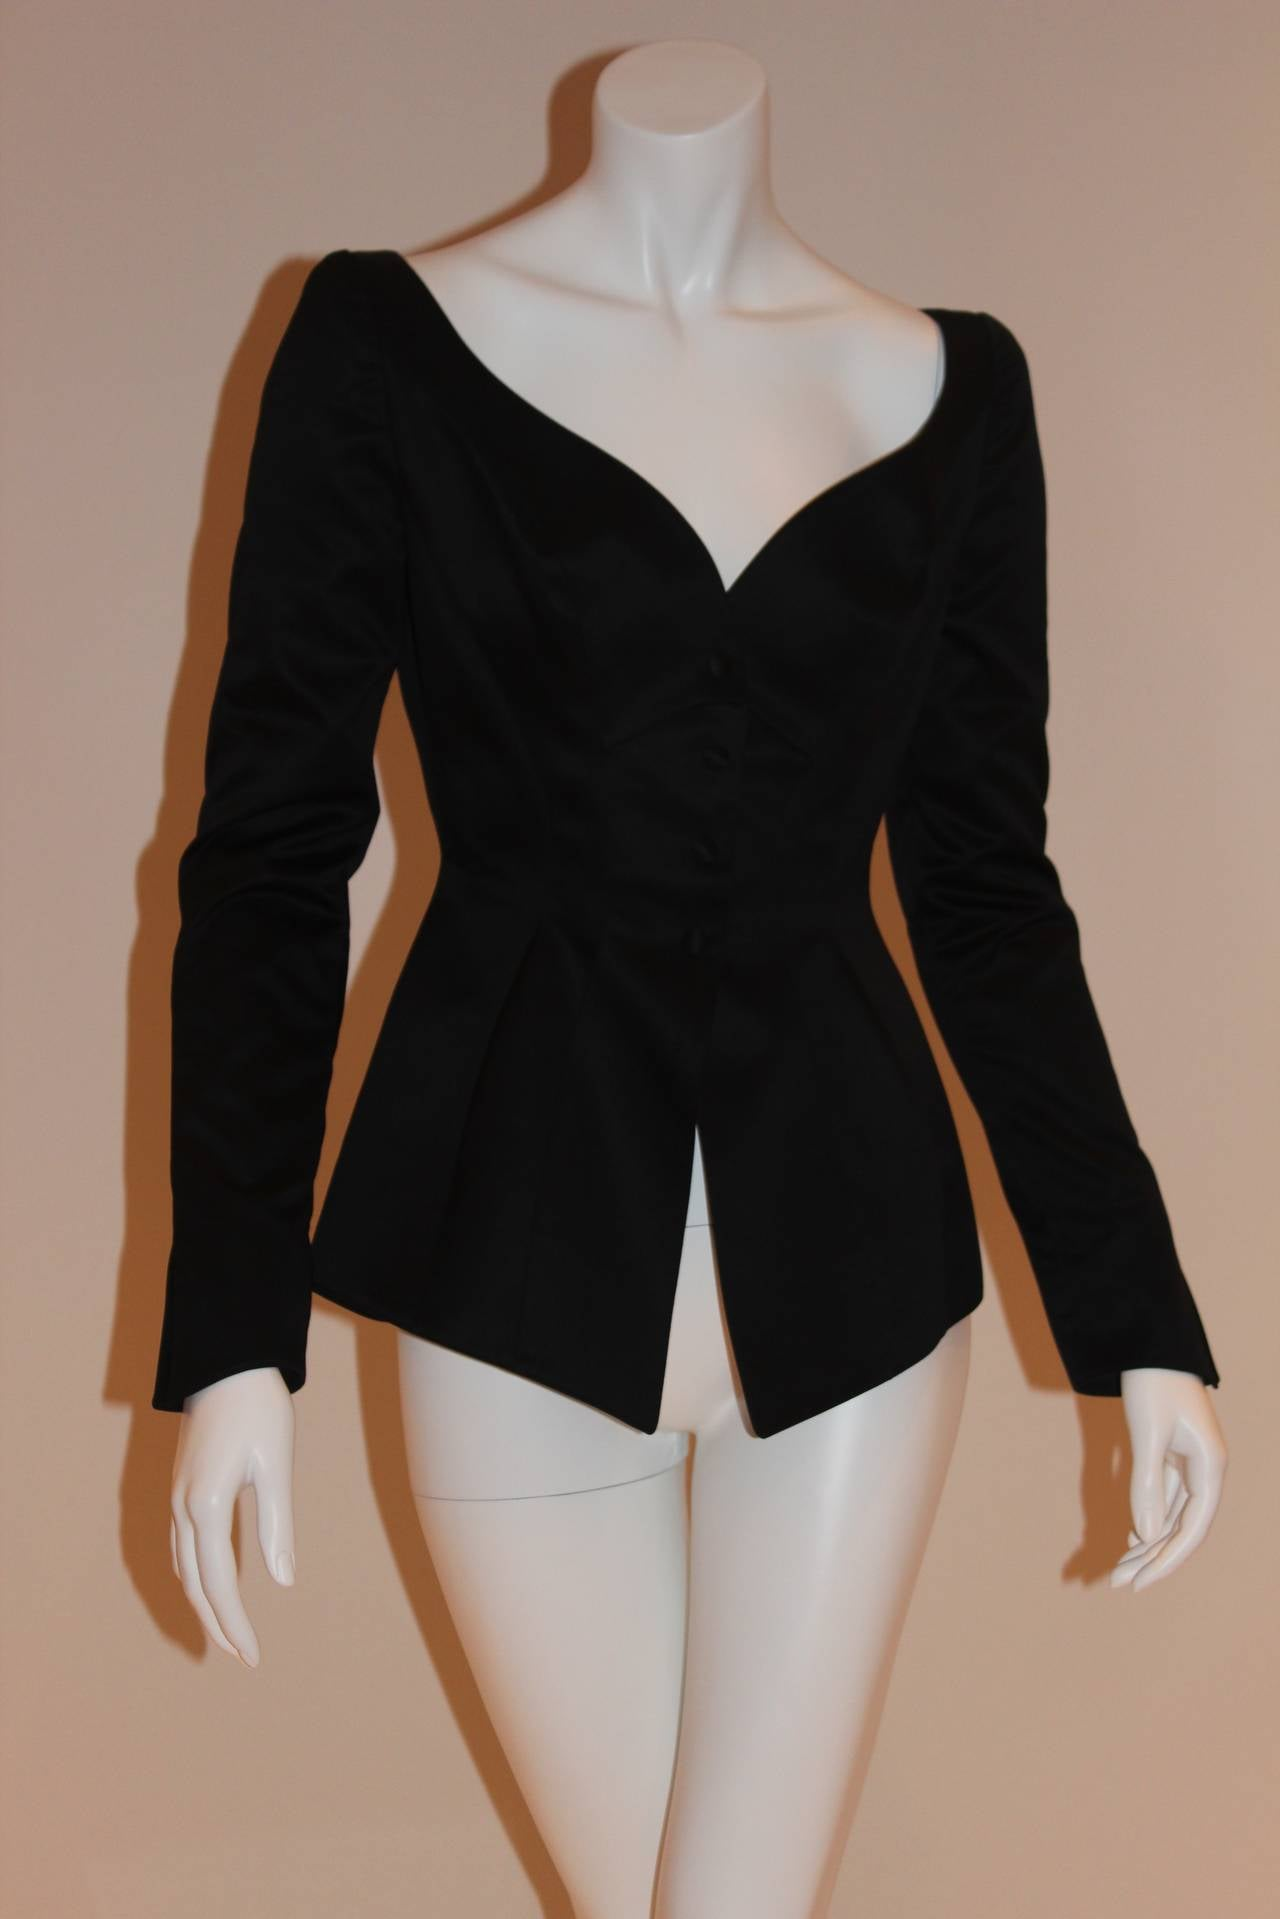 Thierry Mugler Black Blazer In Excellent Condition For Sale In New York, NY